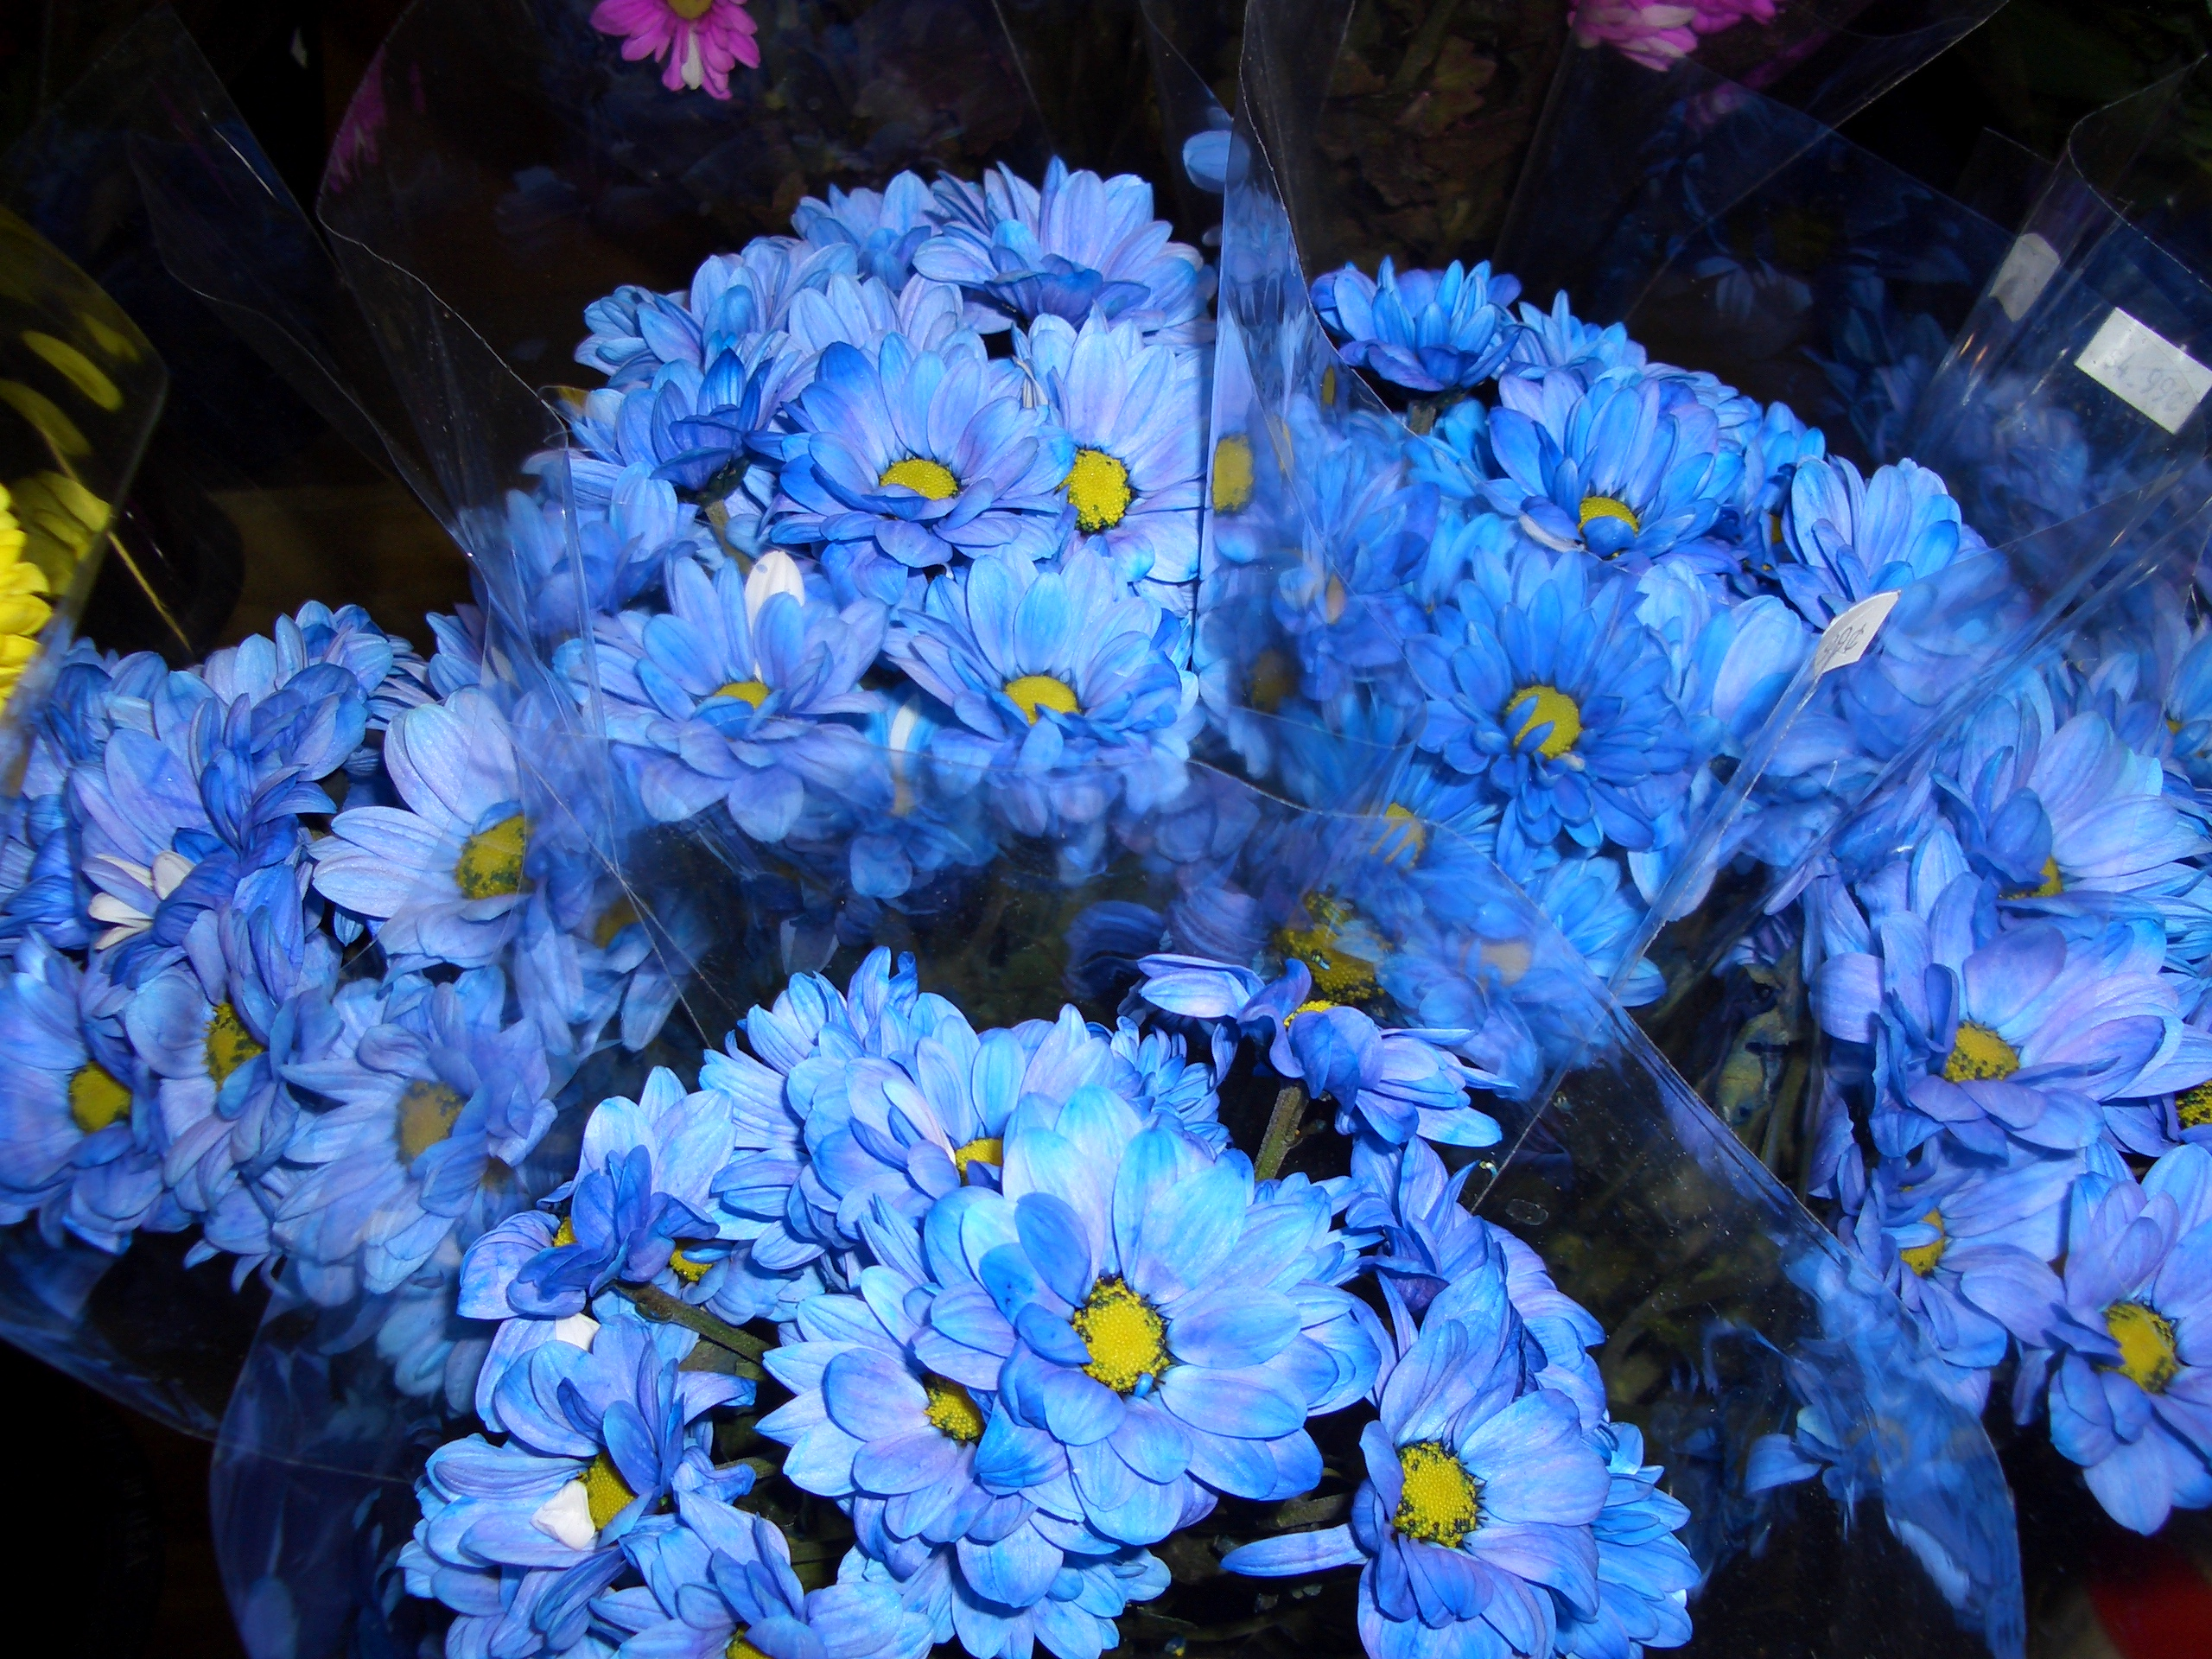 List of blue colored flowers 8 cool hd wallpaper hdflowerwallpaper list of blue colored flowers desktop background izmirmasajfo